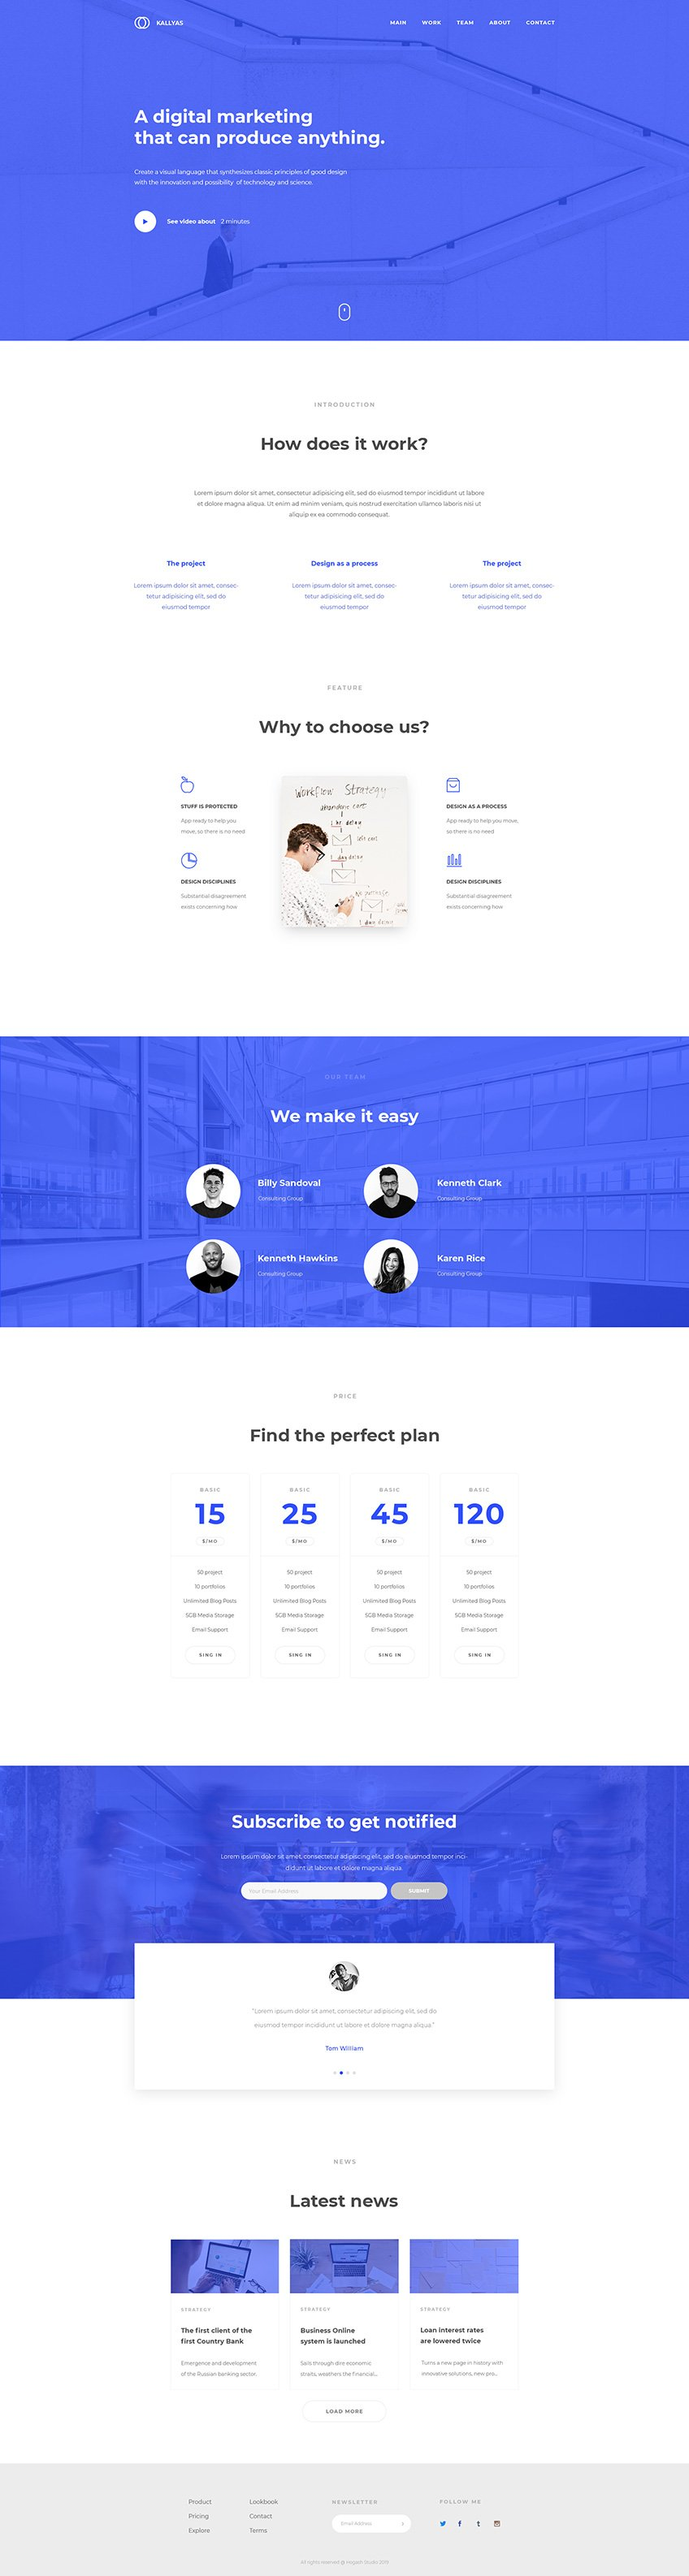 Multi-Purpose Agency - Free PSD Template